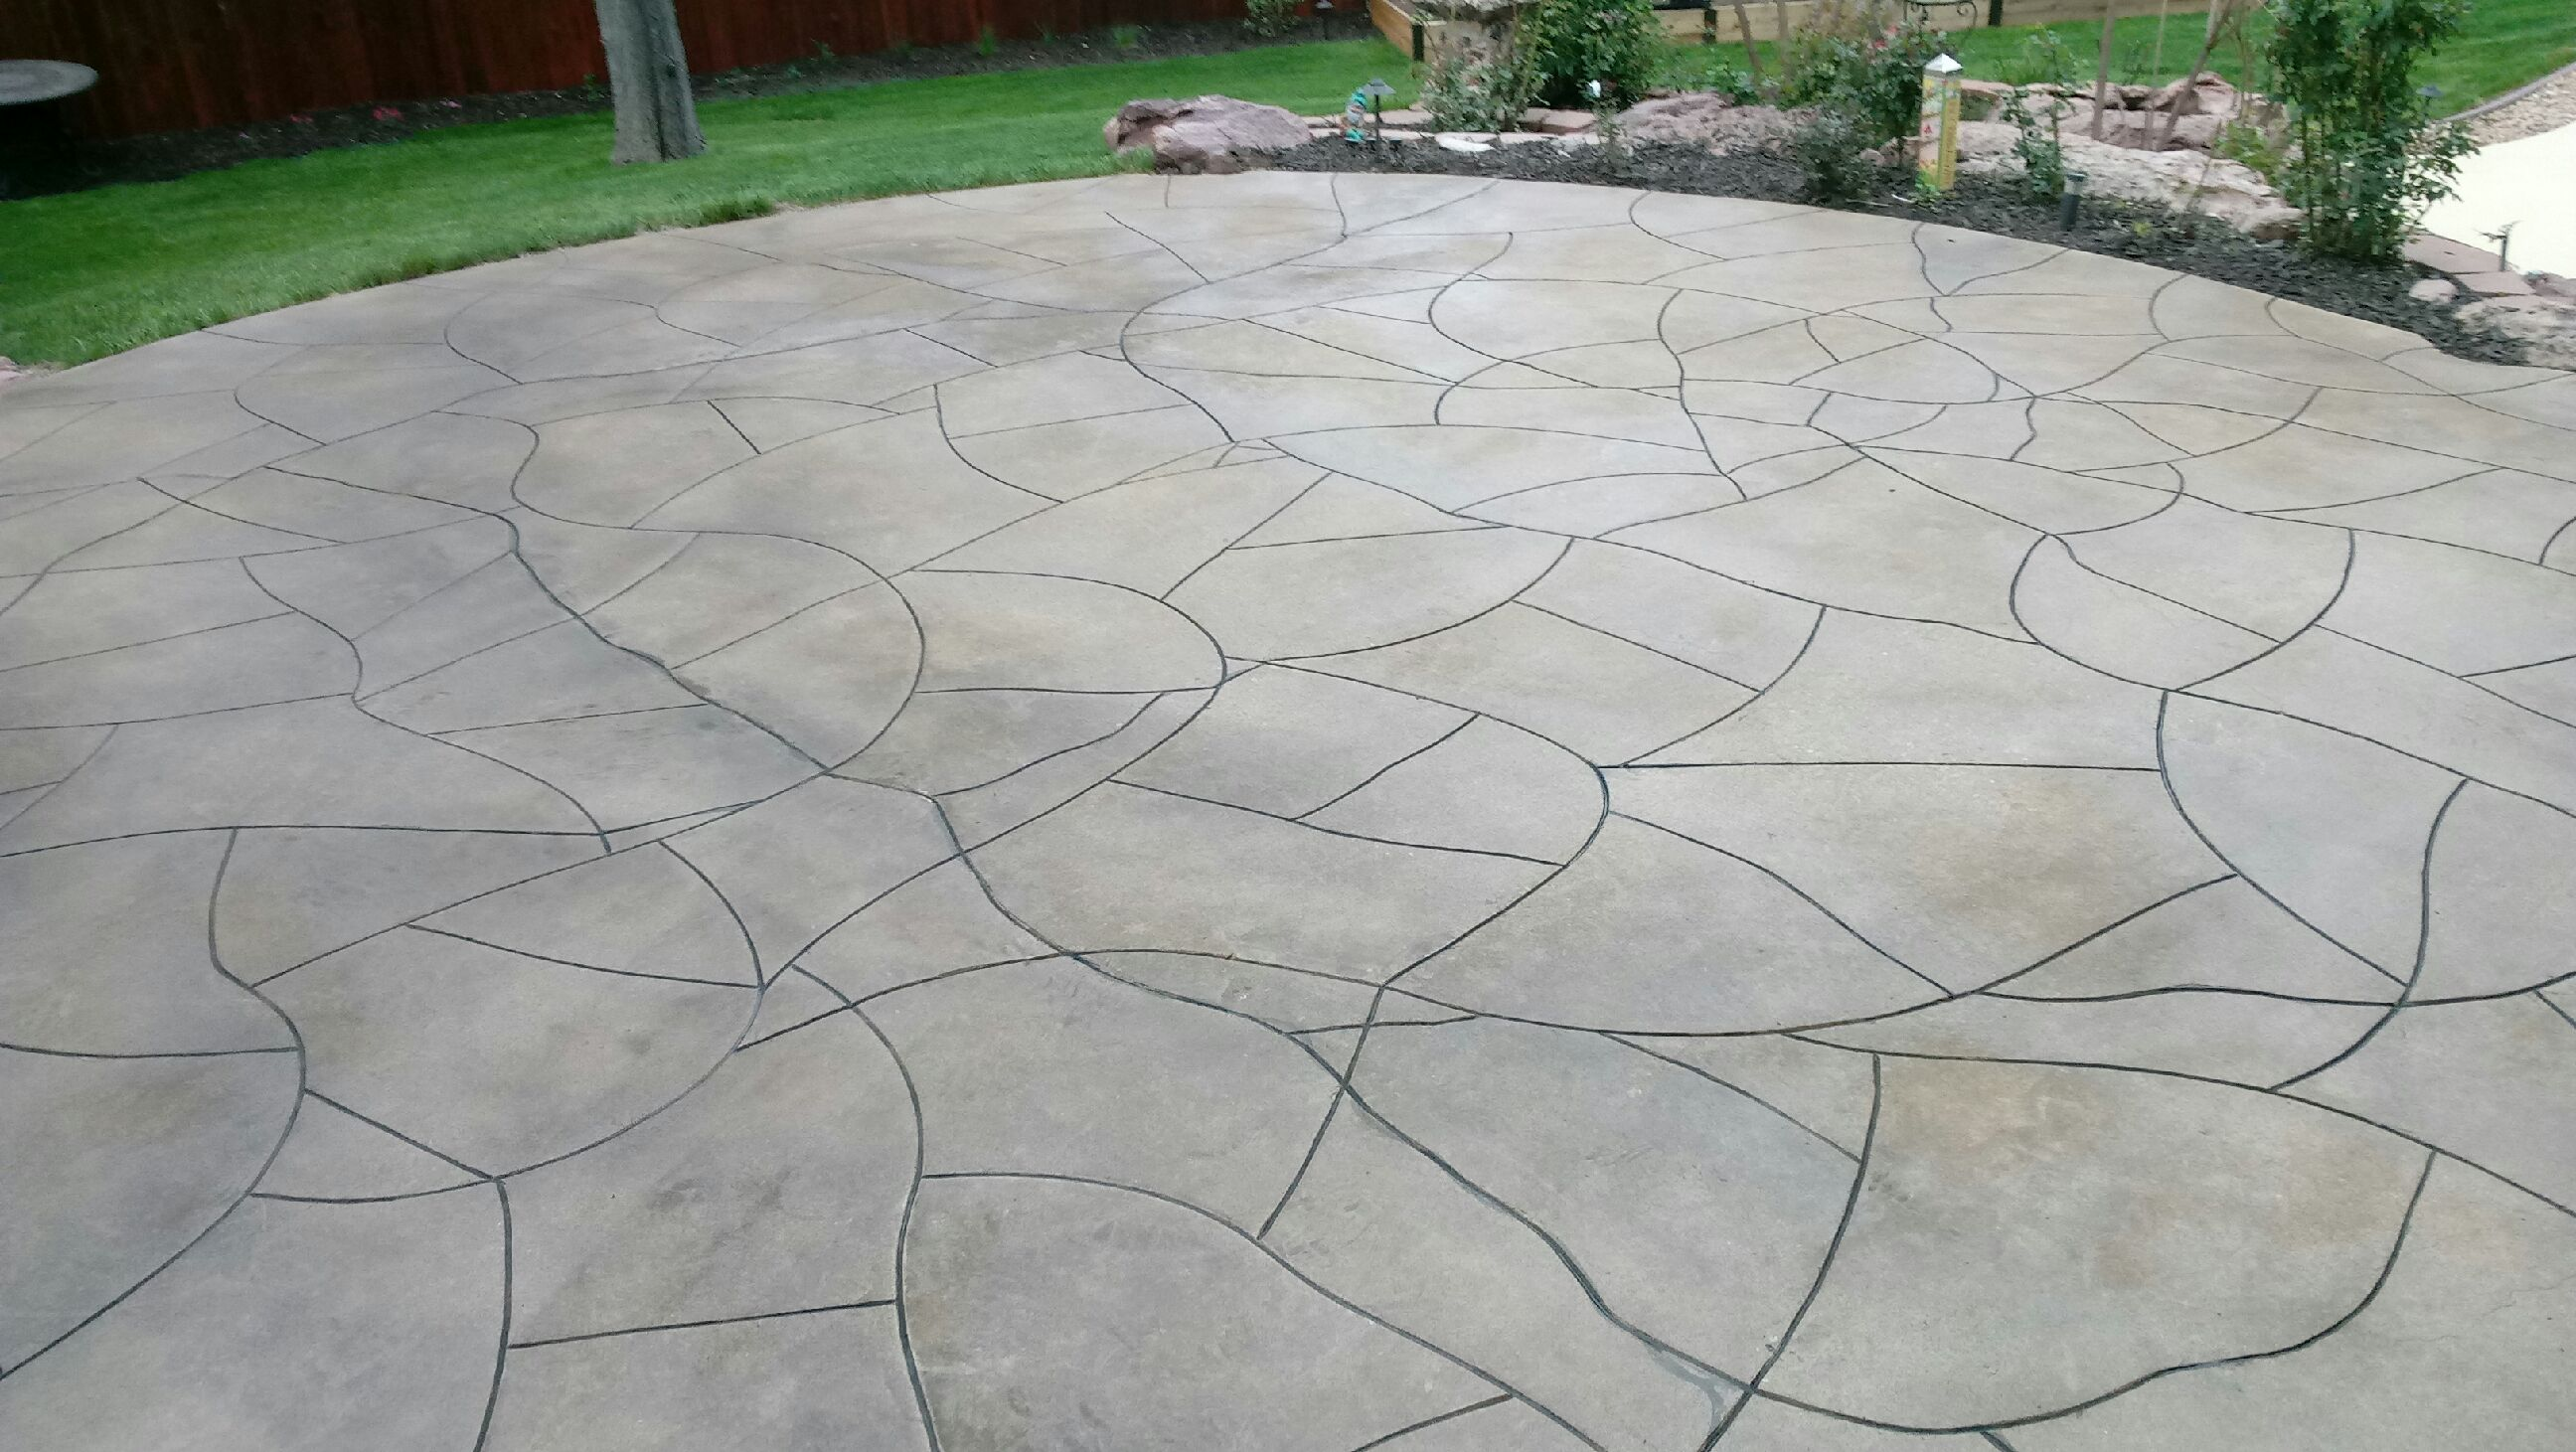 Genial Decorative Concrete Patio With Custom Lines Carved